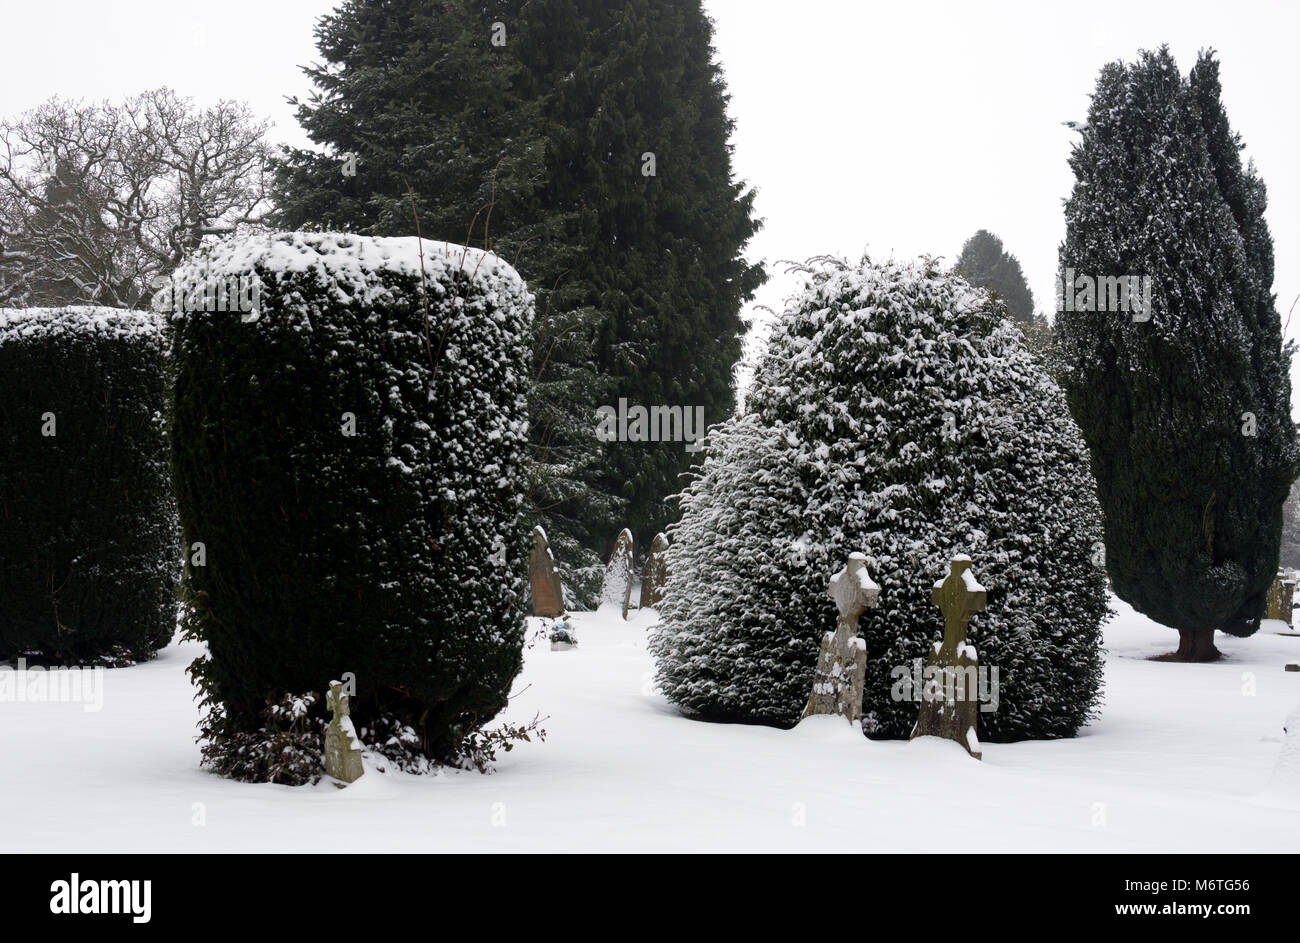 Trimmed yews and other conifers in snow, Warwick cemetery, Warwickshire, UK - Stock Image